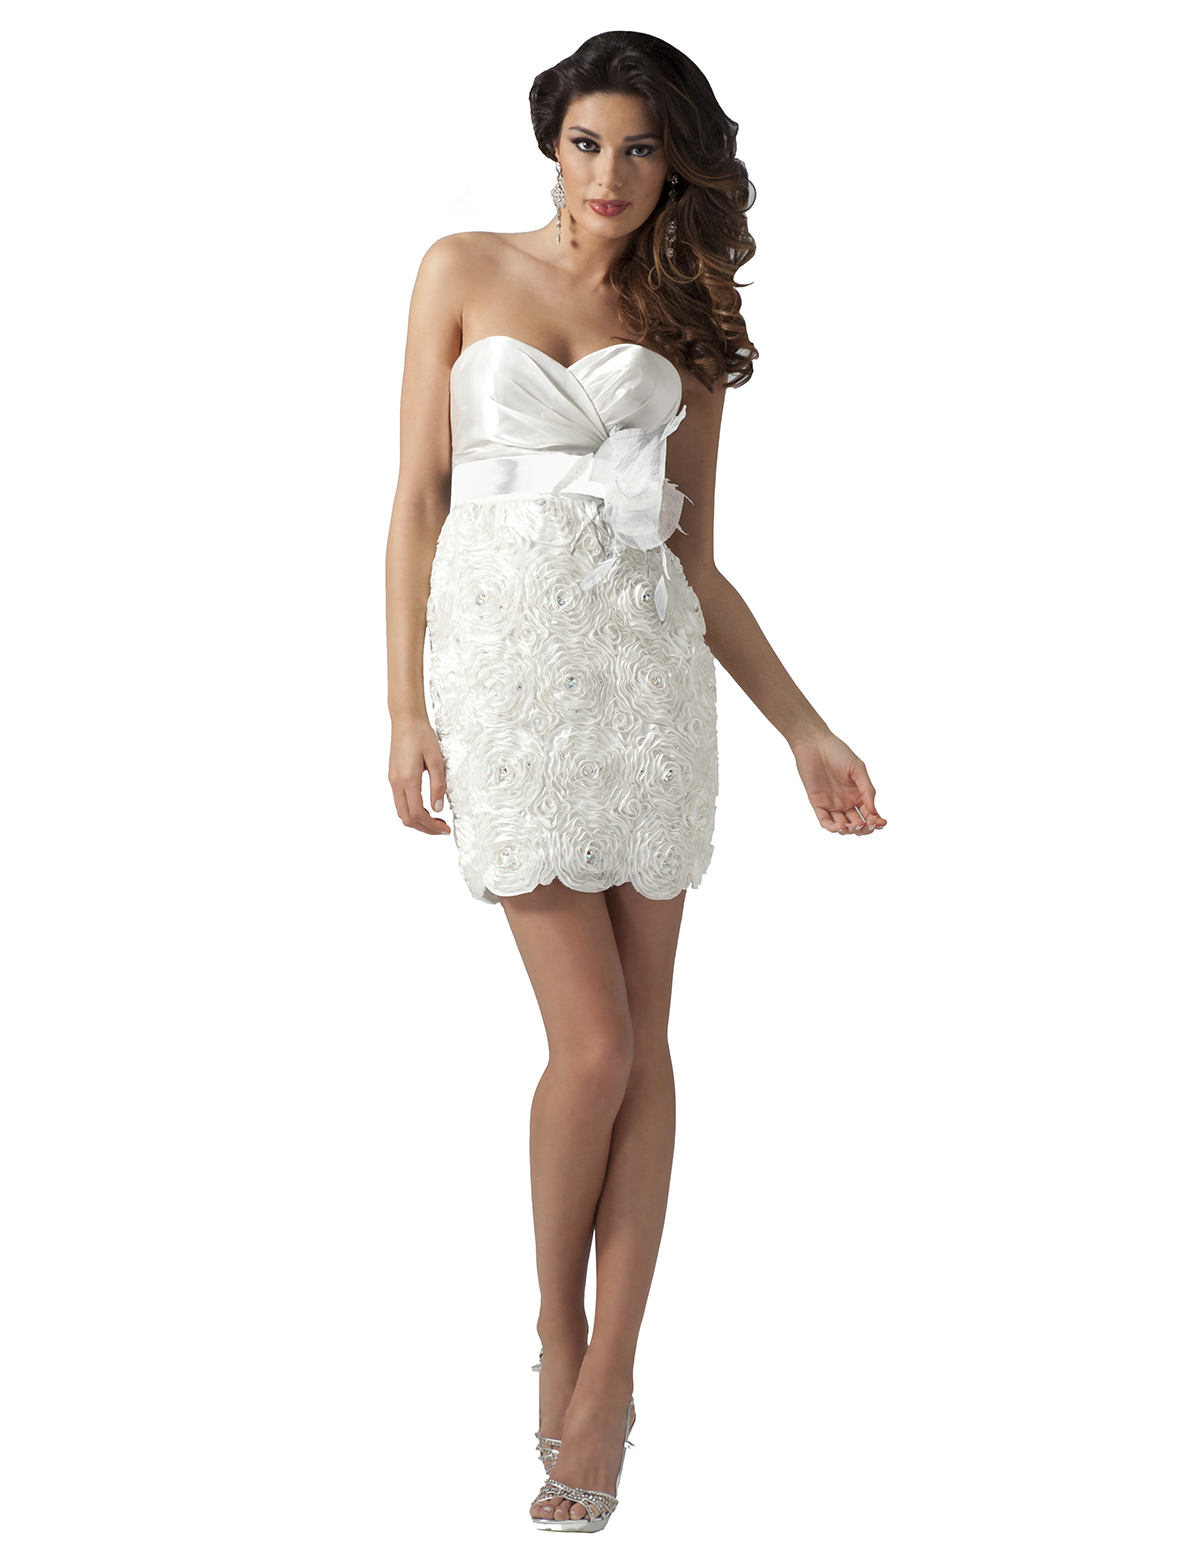 81f19a6868e 2011 Cocktail dresses - Ivory and black strapless short formal dress 1615